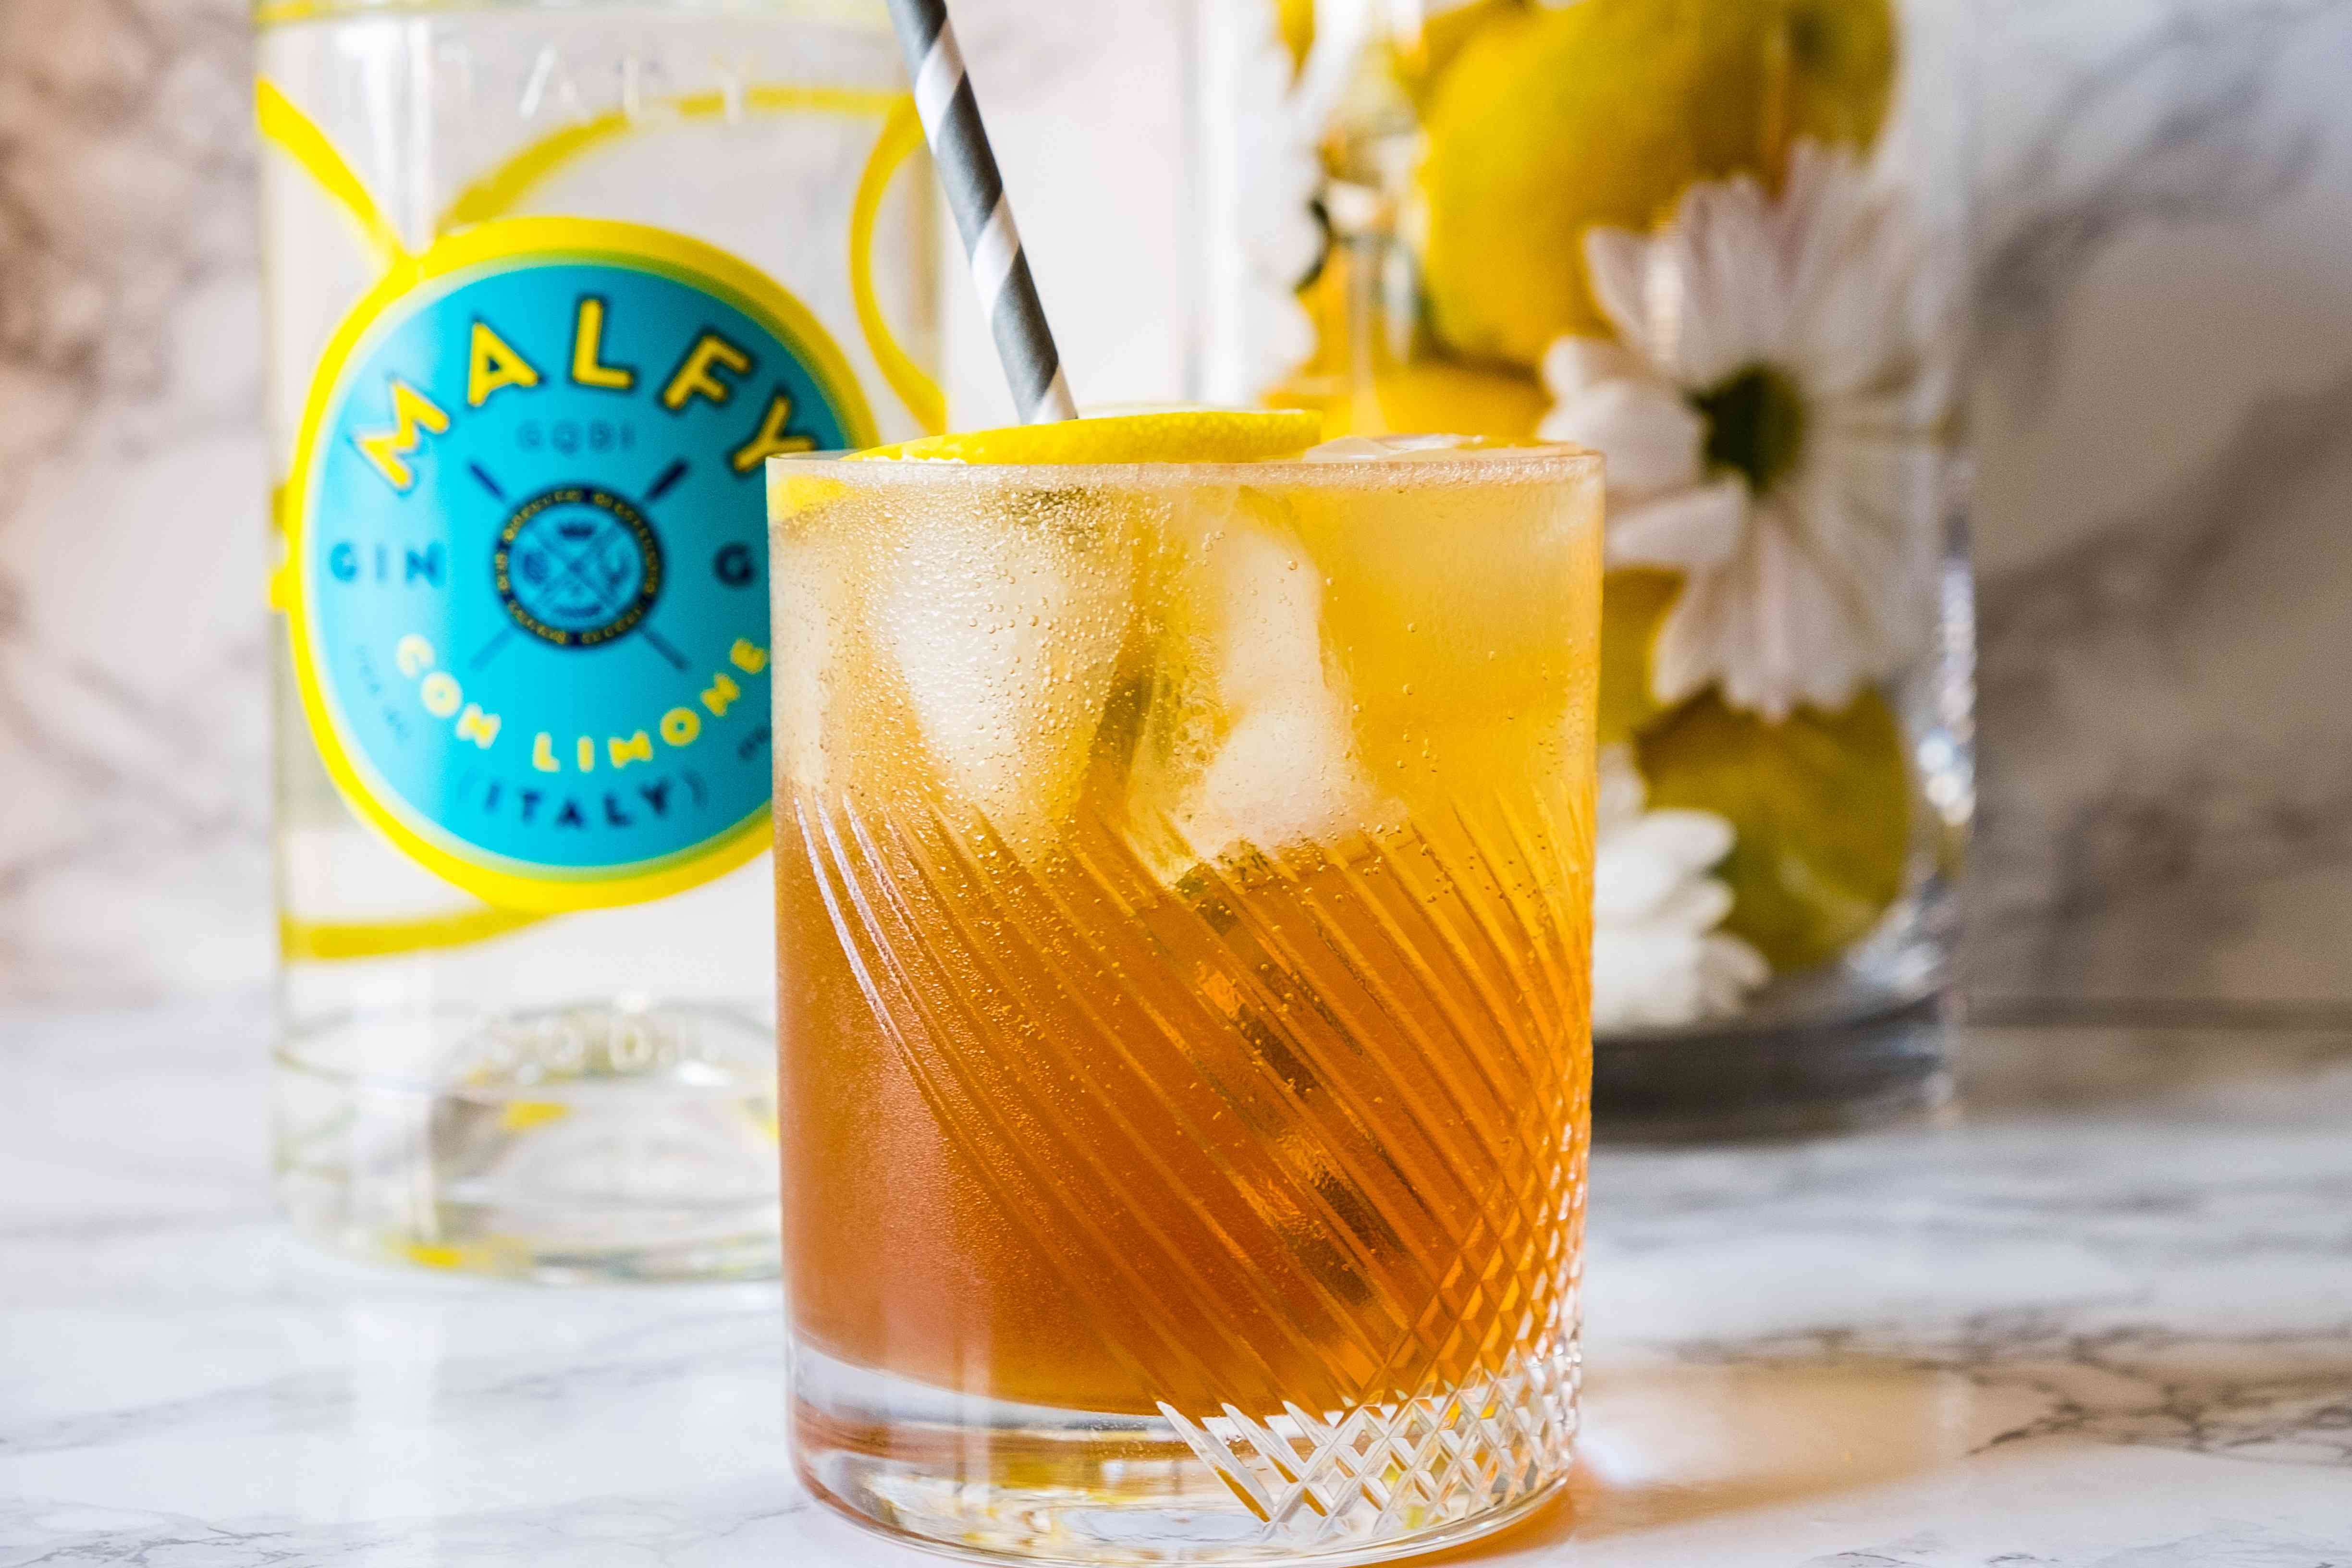 alcohol, signature cocktail, drink, glass, ice, beverage, bar, straw, highball glass